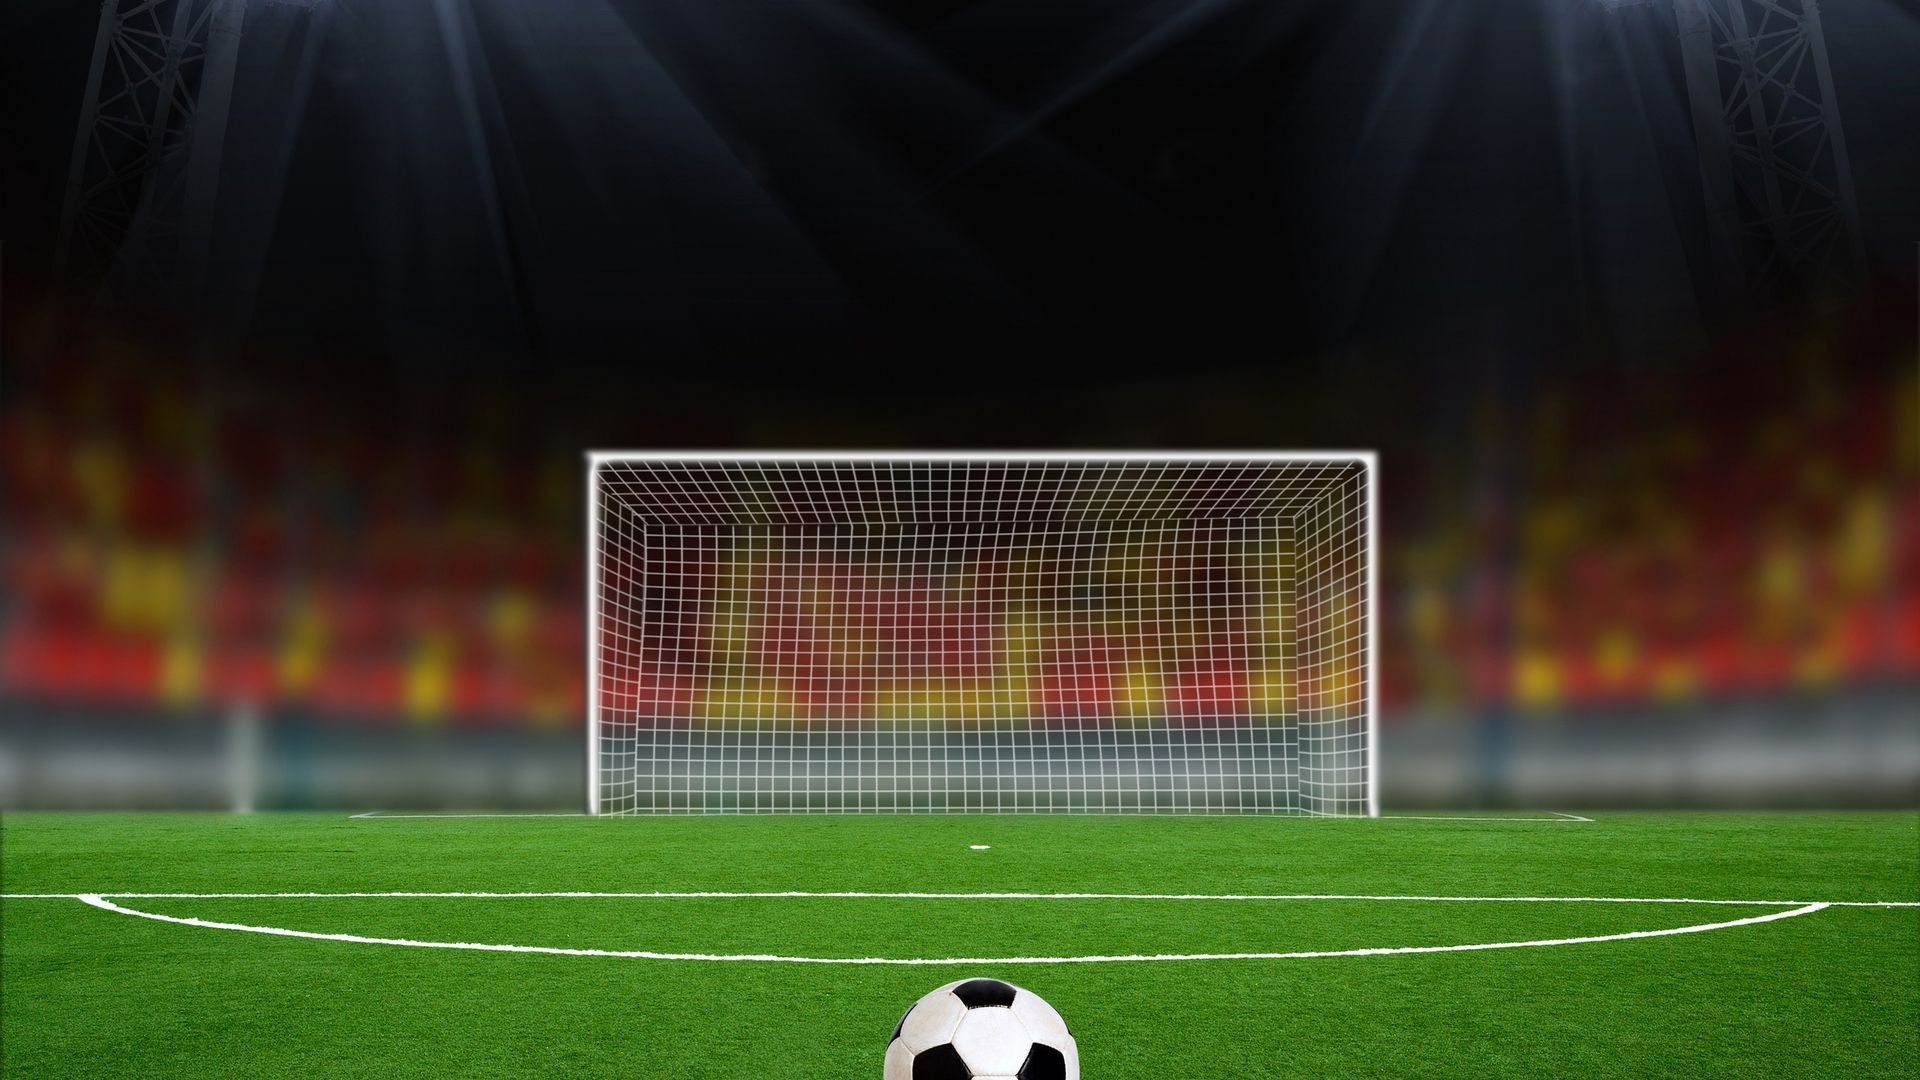 Free Kick The Ball 1080p Hd Wallpaper Football Background Soccer Goal Soccer